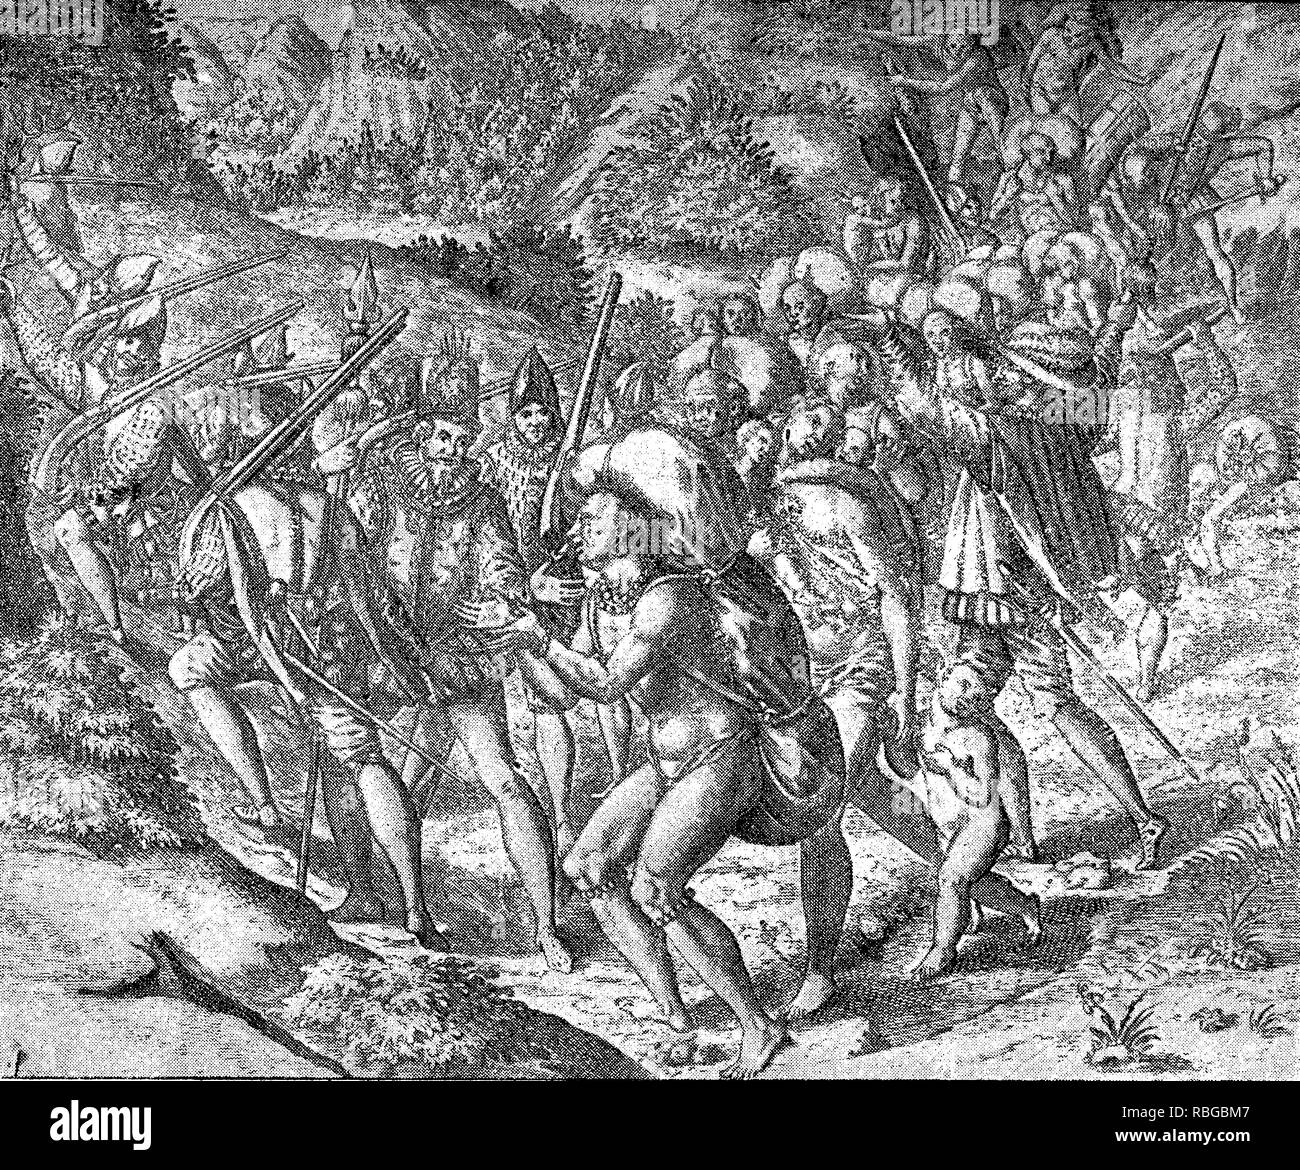 conquest of the Inca empire by Spanish conquistador Francisco Pizarro in XVI century: Spanish soldiers on the road accompanied by aborigines slaves, men and women with children, overloaded with heavy packages - Stock Image